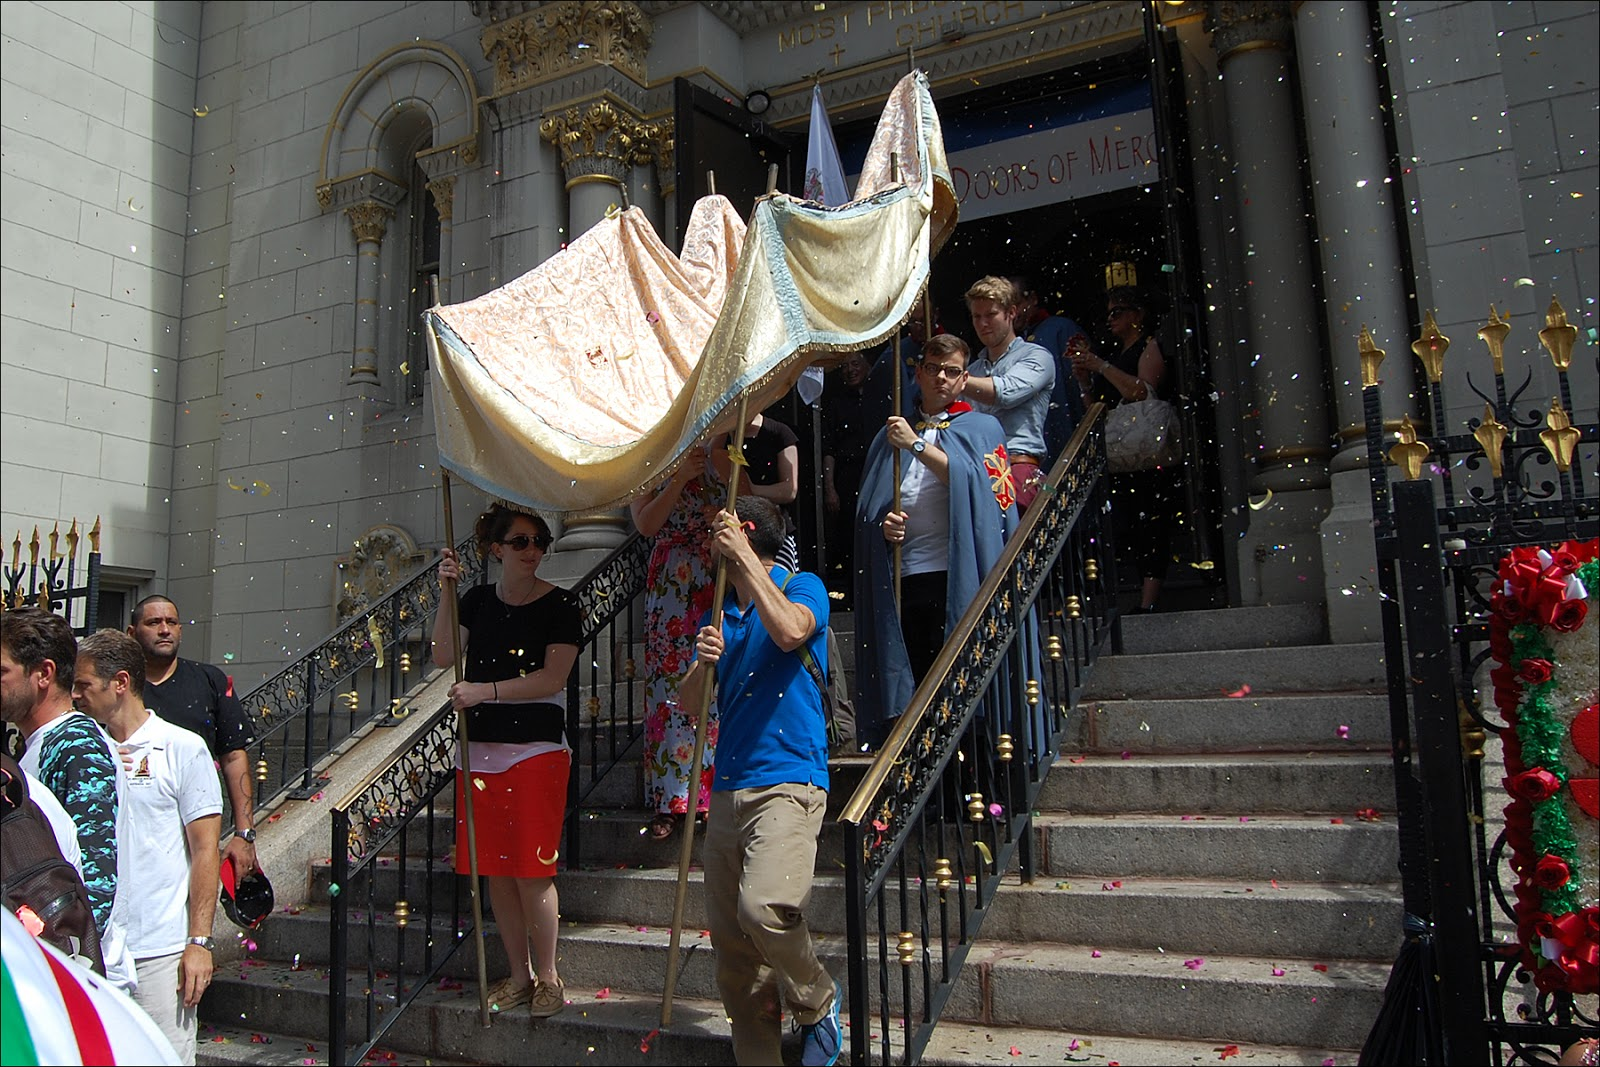 Anthony Ou0027Boyle helps carry the processional canopy & Il Regno: Worlds Collide at the Feast of San Rocco